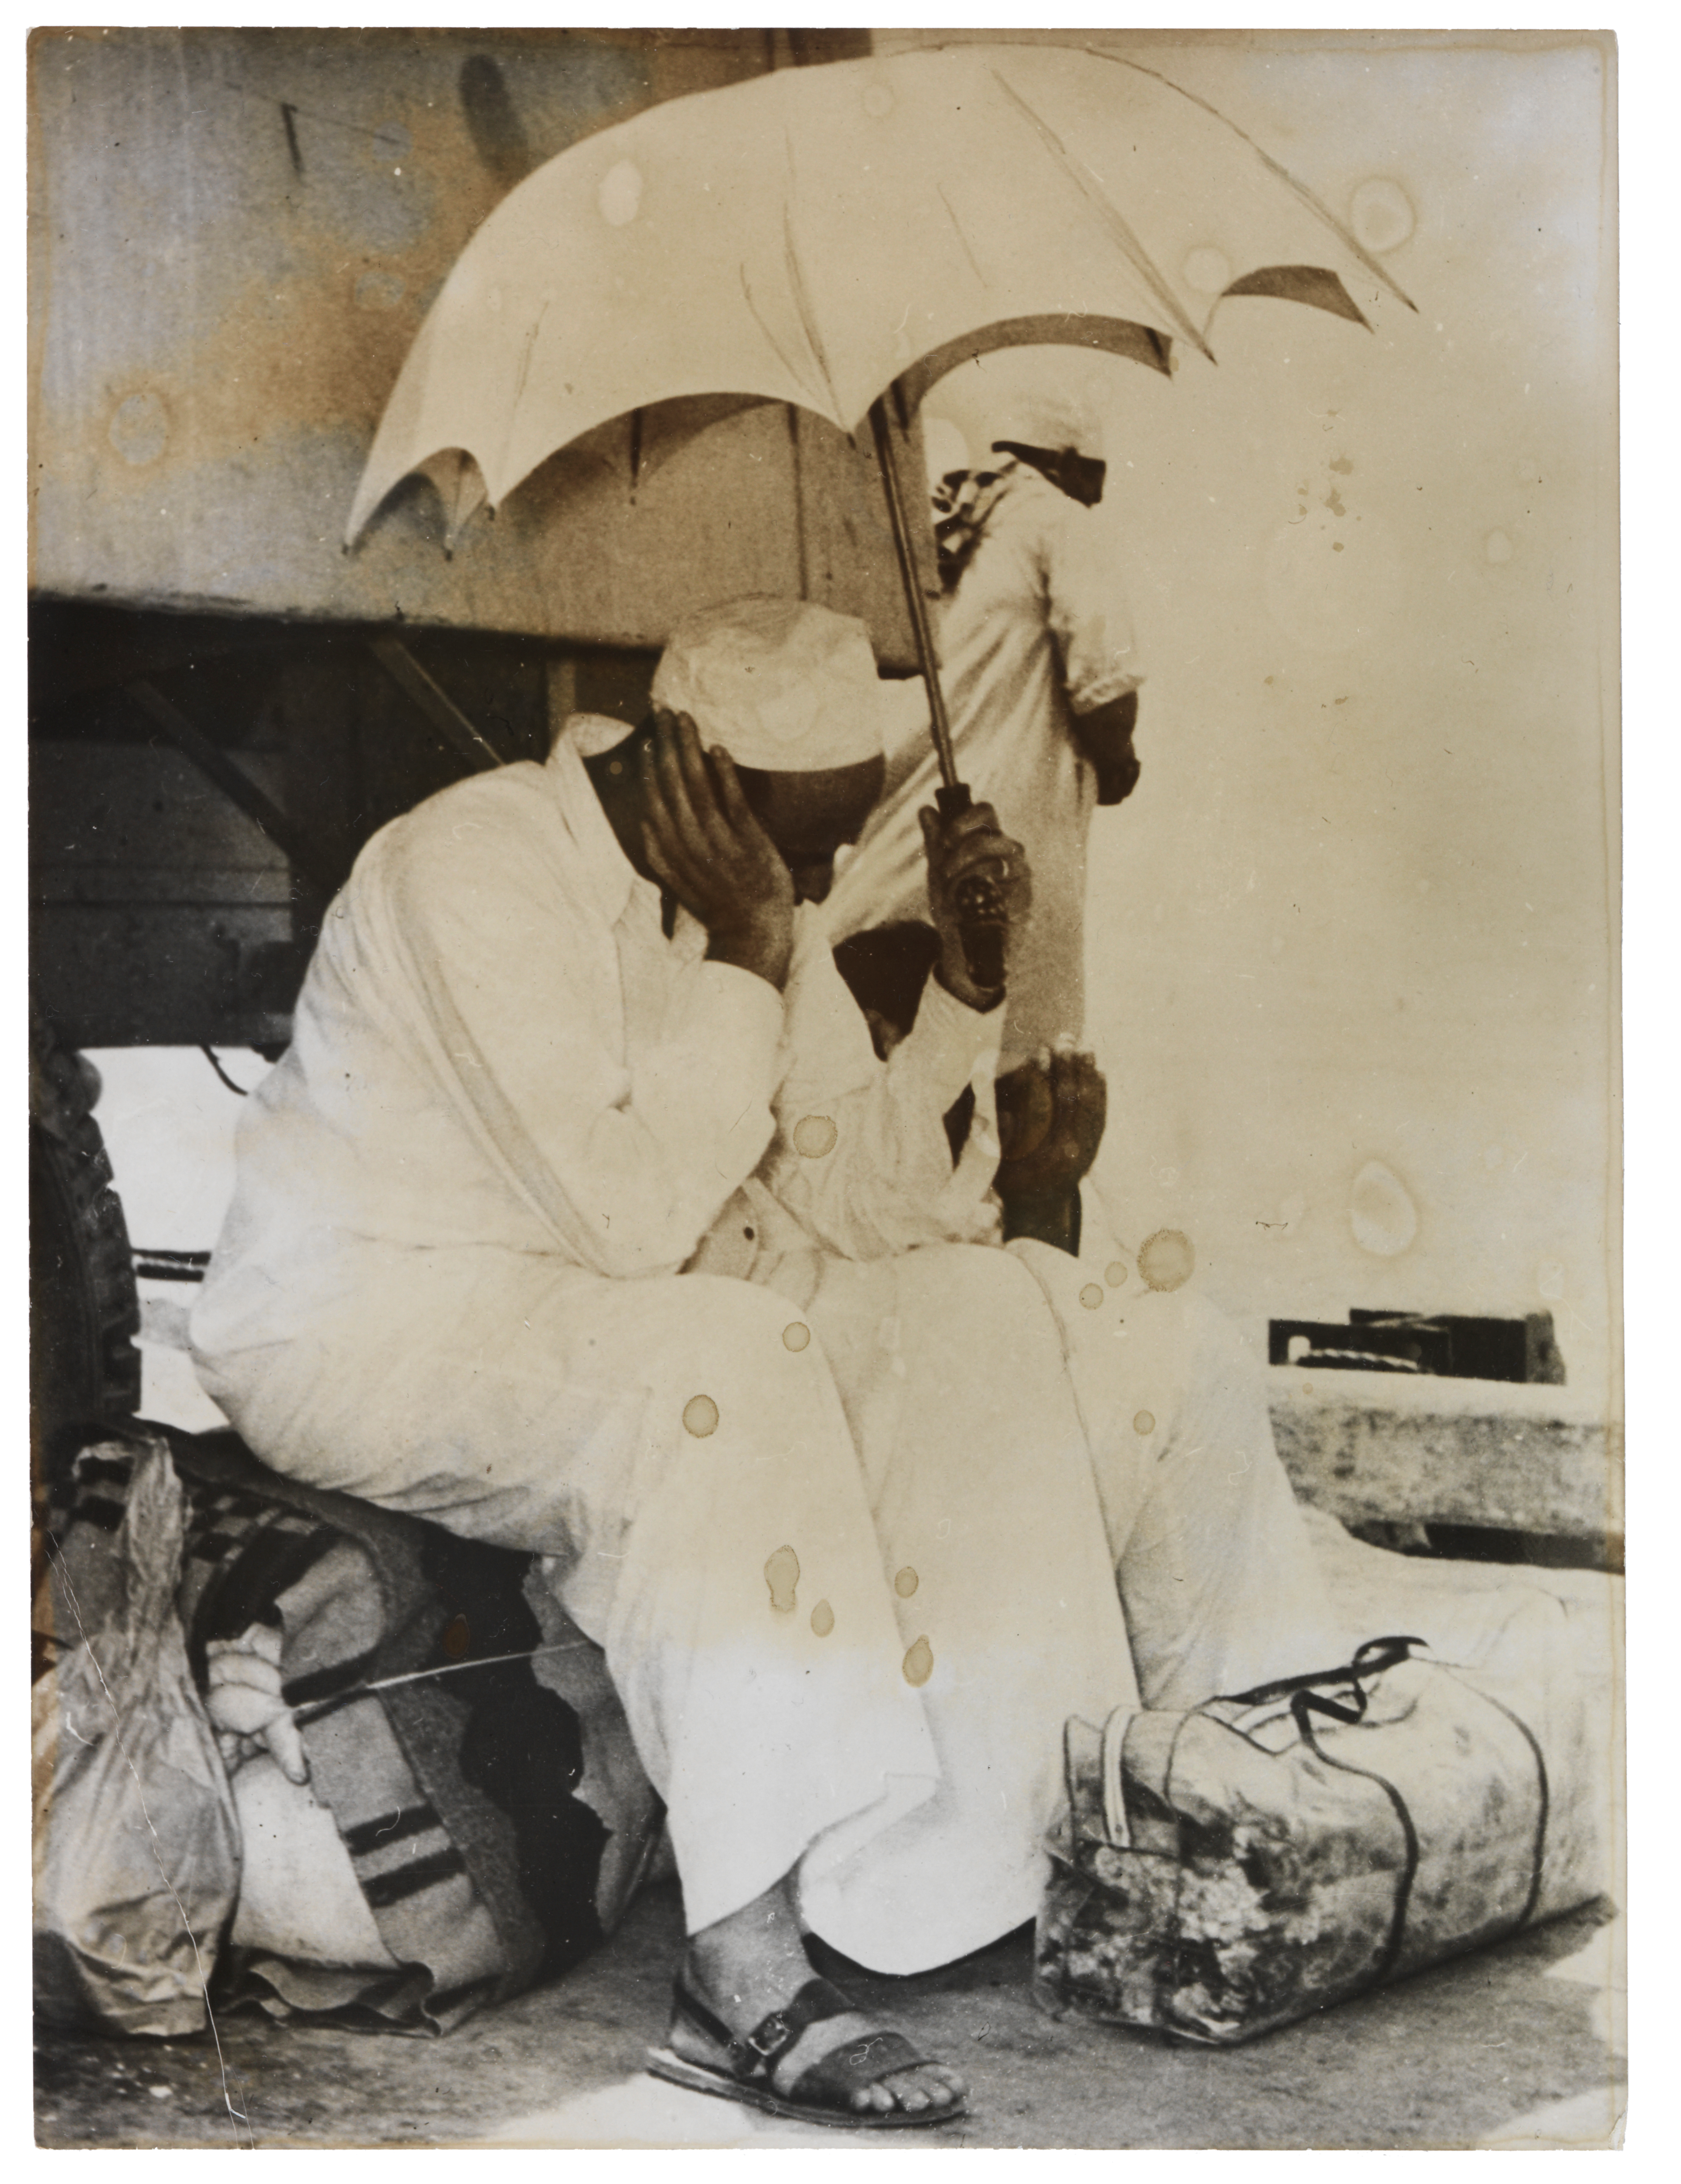 A pilgrim waiting with his luggage, possibly at Suez